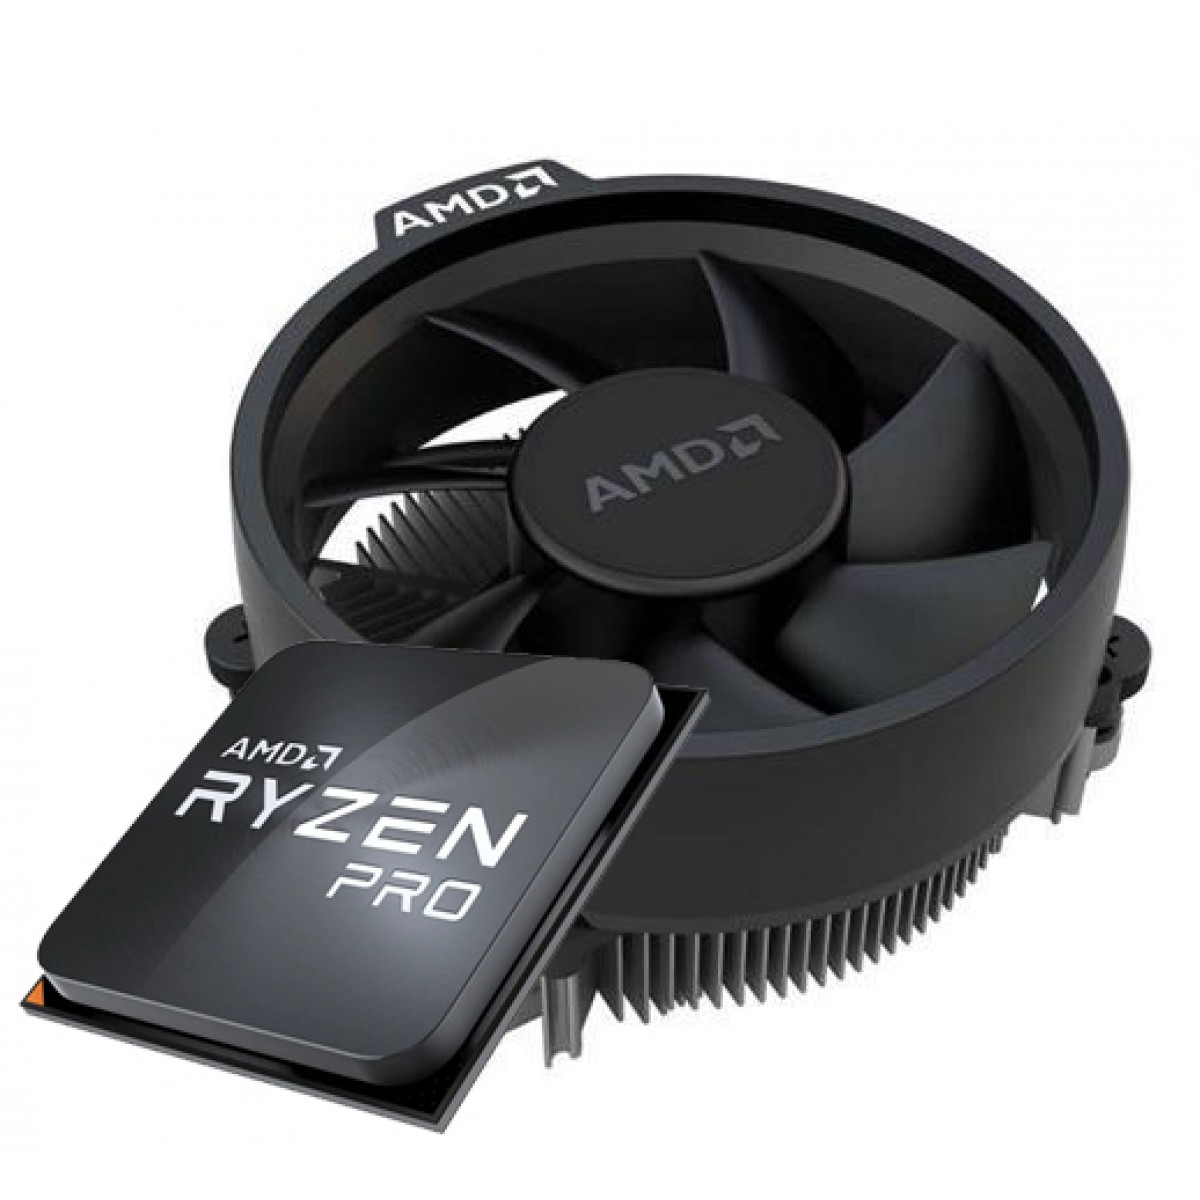 Processador AMD Ryzen 5 PRO 2400G 3.6GHz (3.9GHz Turbo), 4-Cores 8-Threads, Cooler Wraith Stealth, AM4, C/ Video Radeon Vega 11 Graphics, YD240BC5FBMPK, OEM